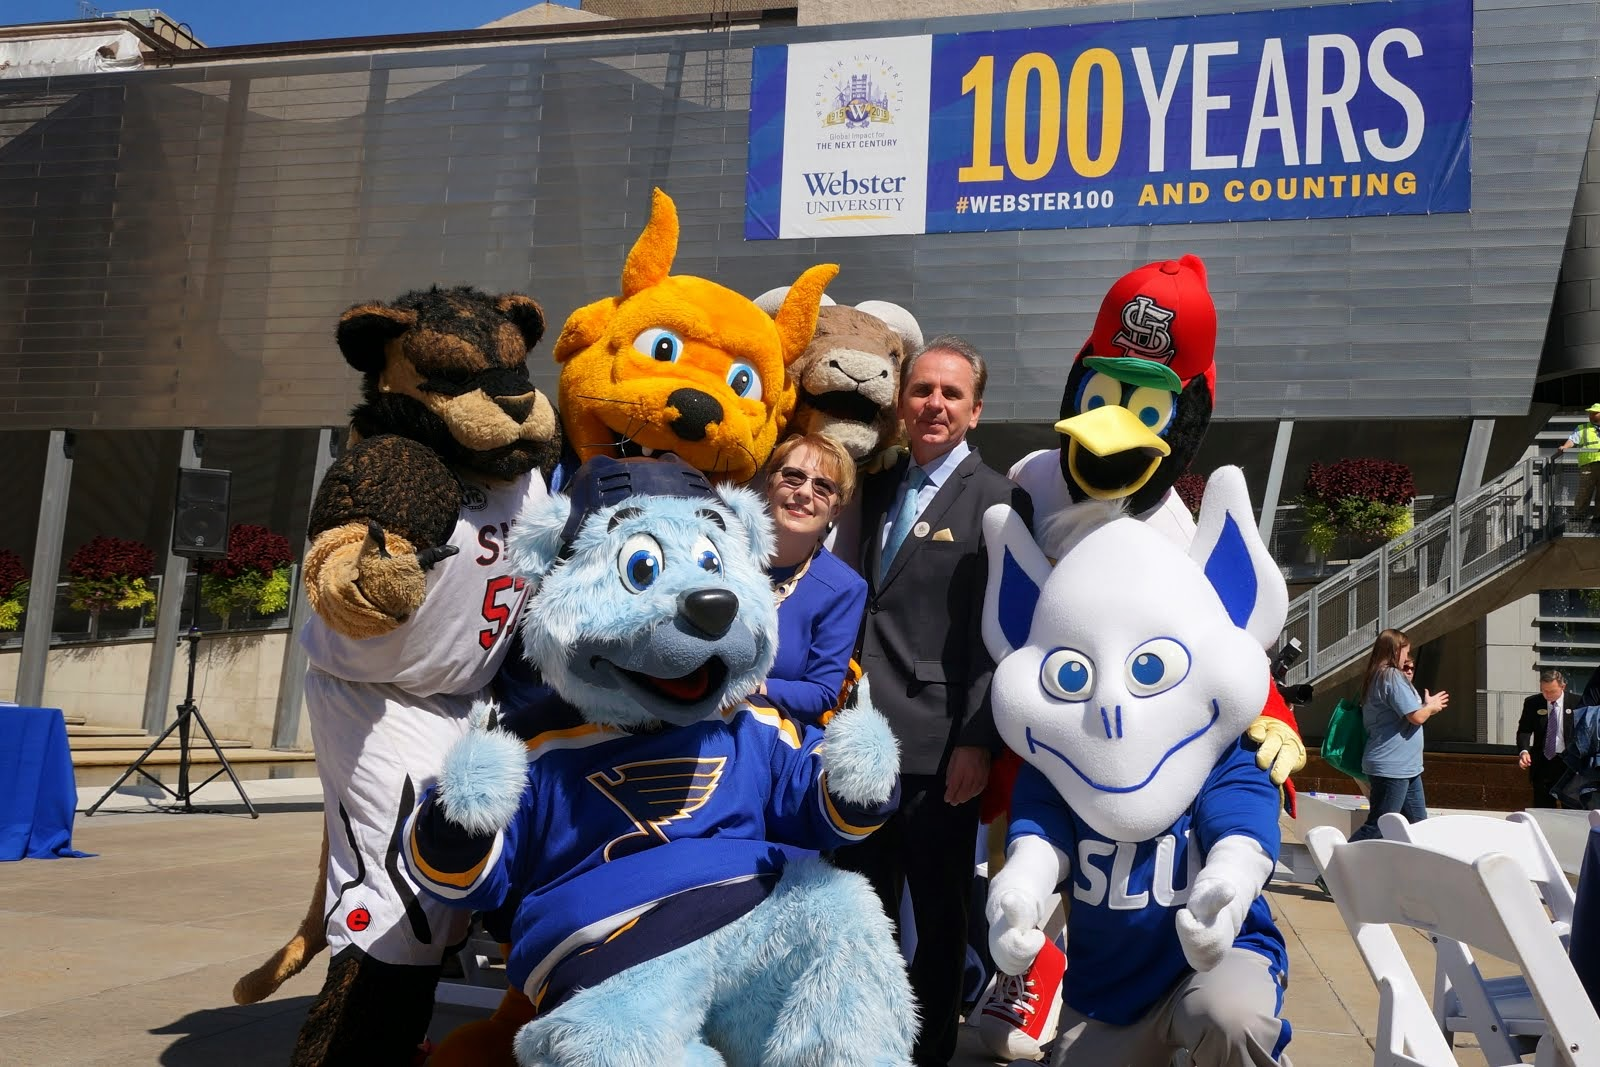 Webster University Centennial Celebration